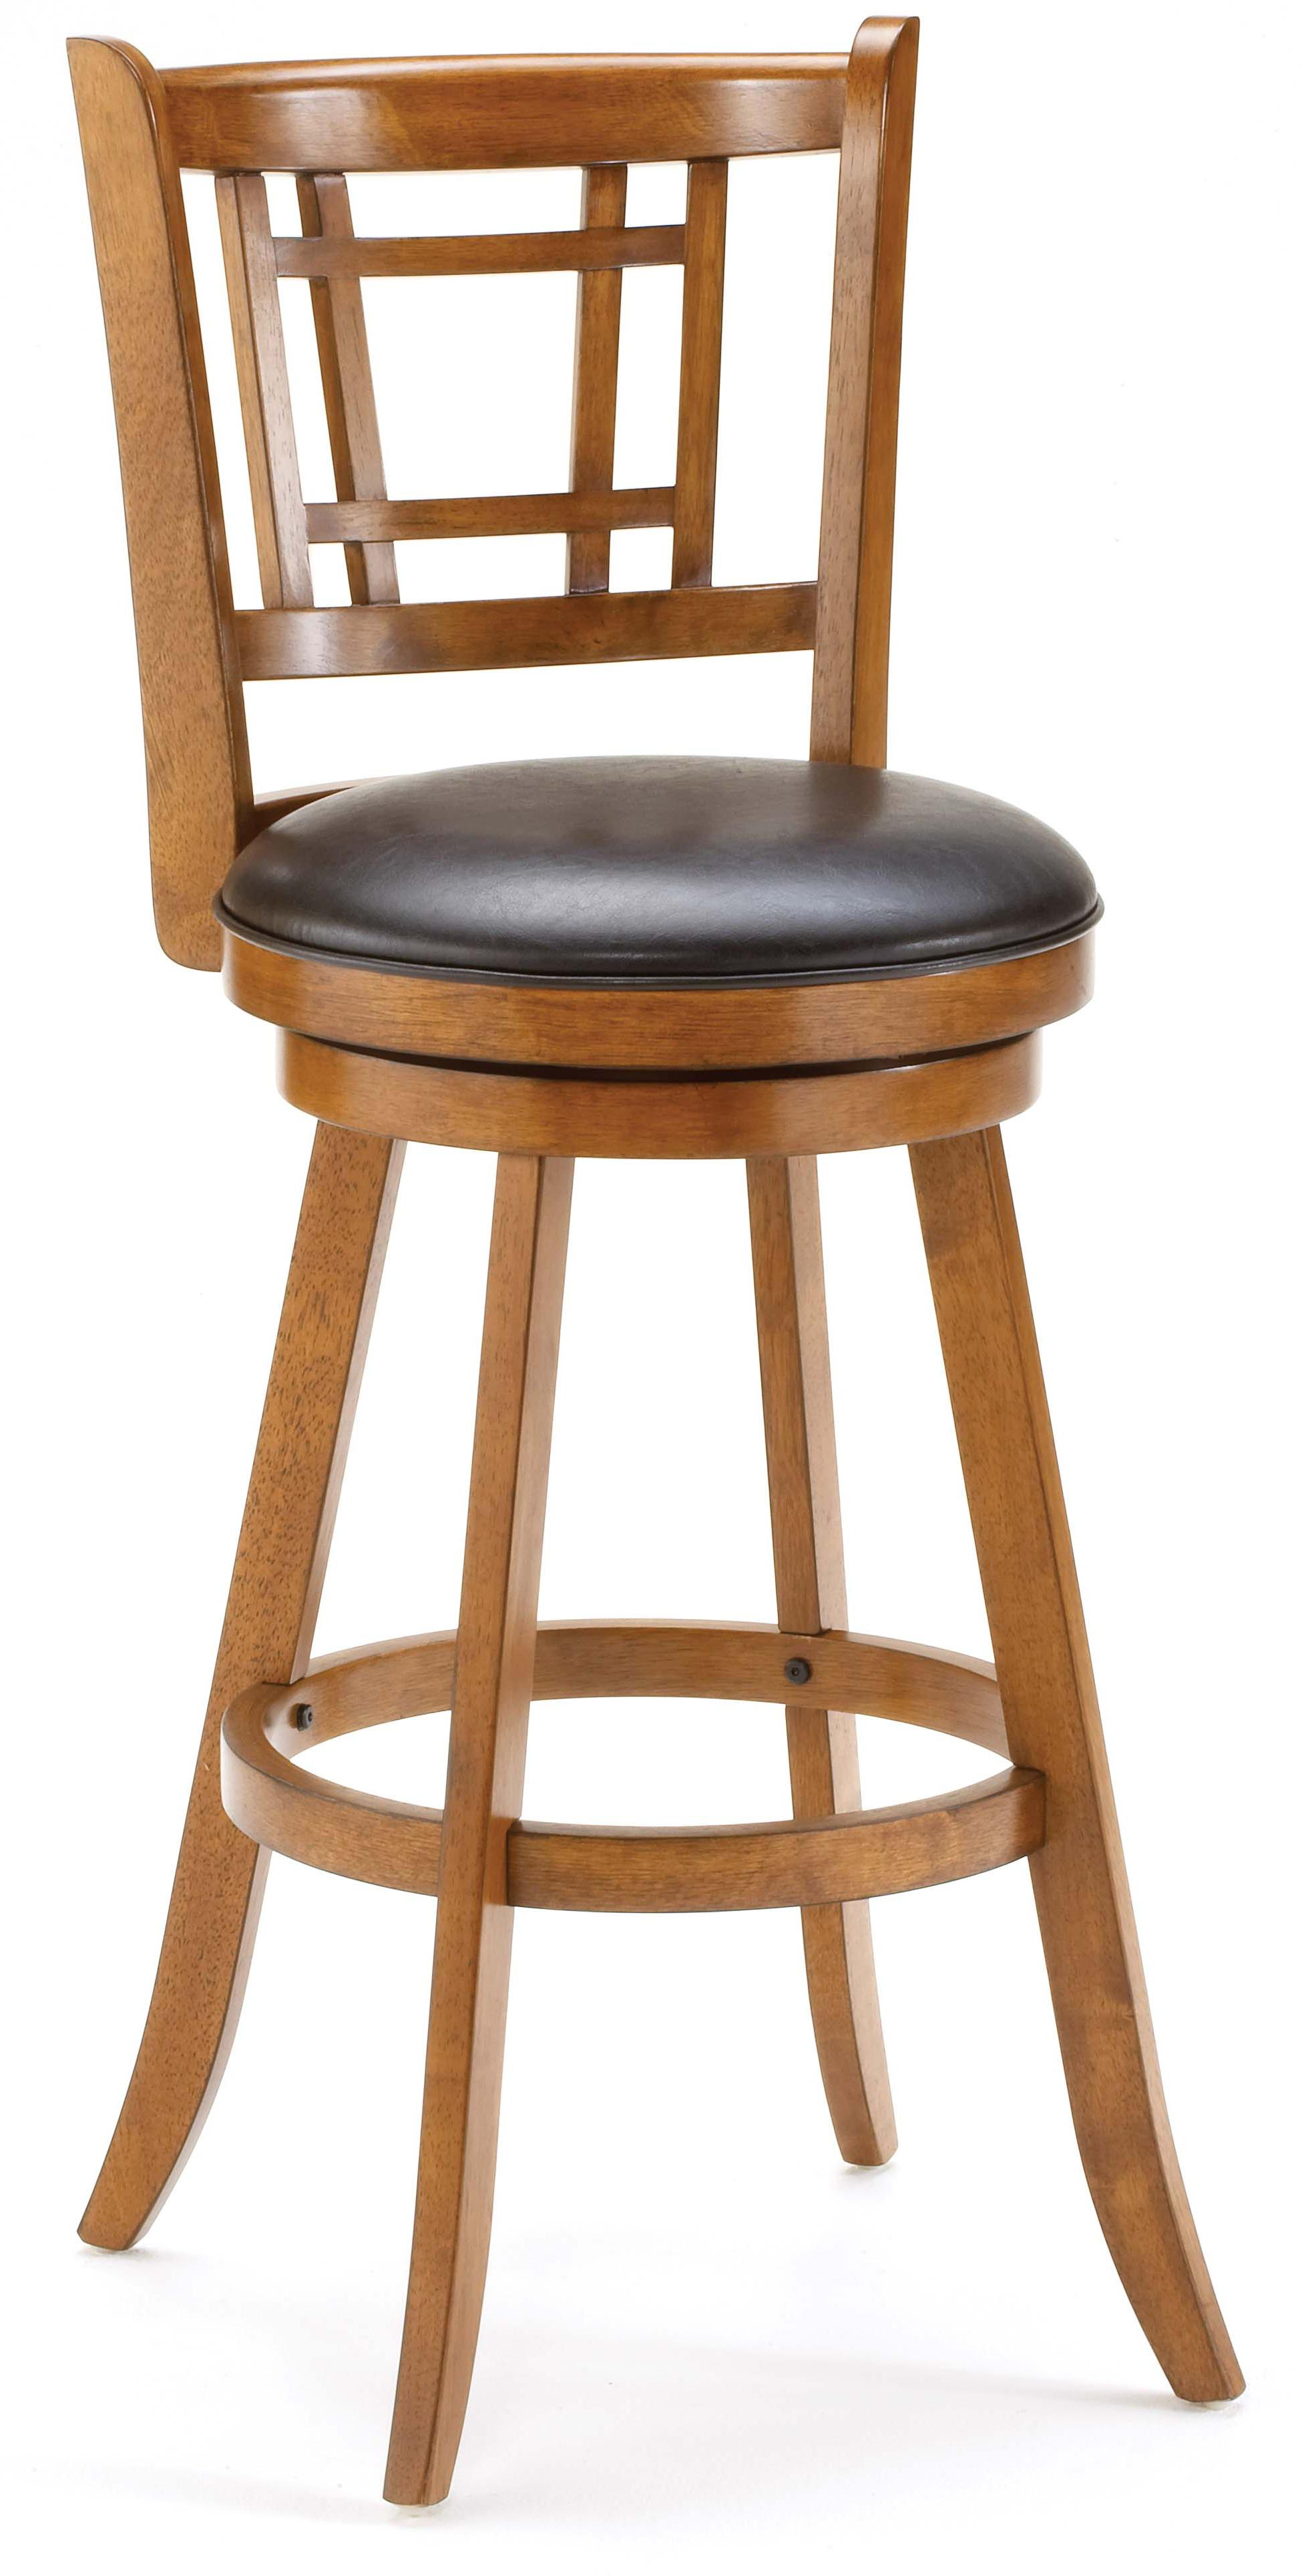 Excellent Hillsdale Wood Stools Fairfox Swivel Counter Stool W Caraccident5 Cool Chair Designs And Ideas Caraccident5Info